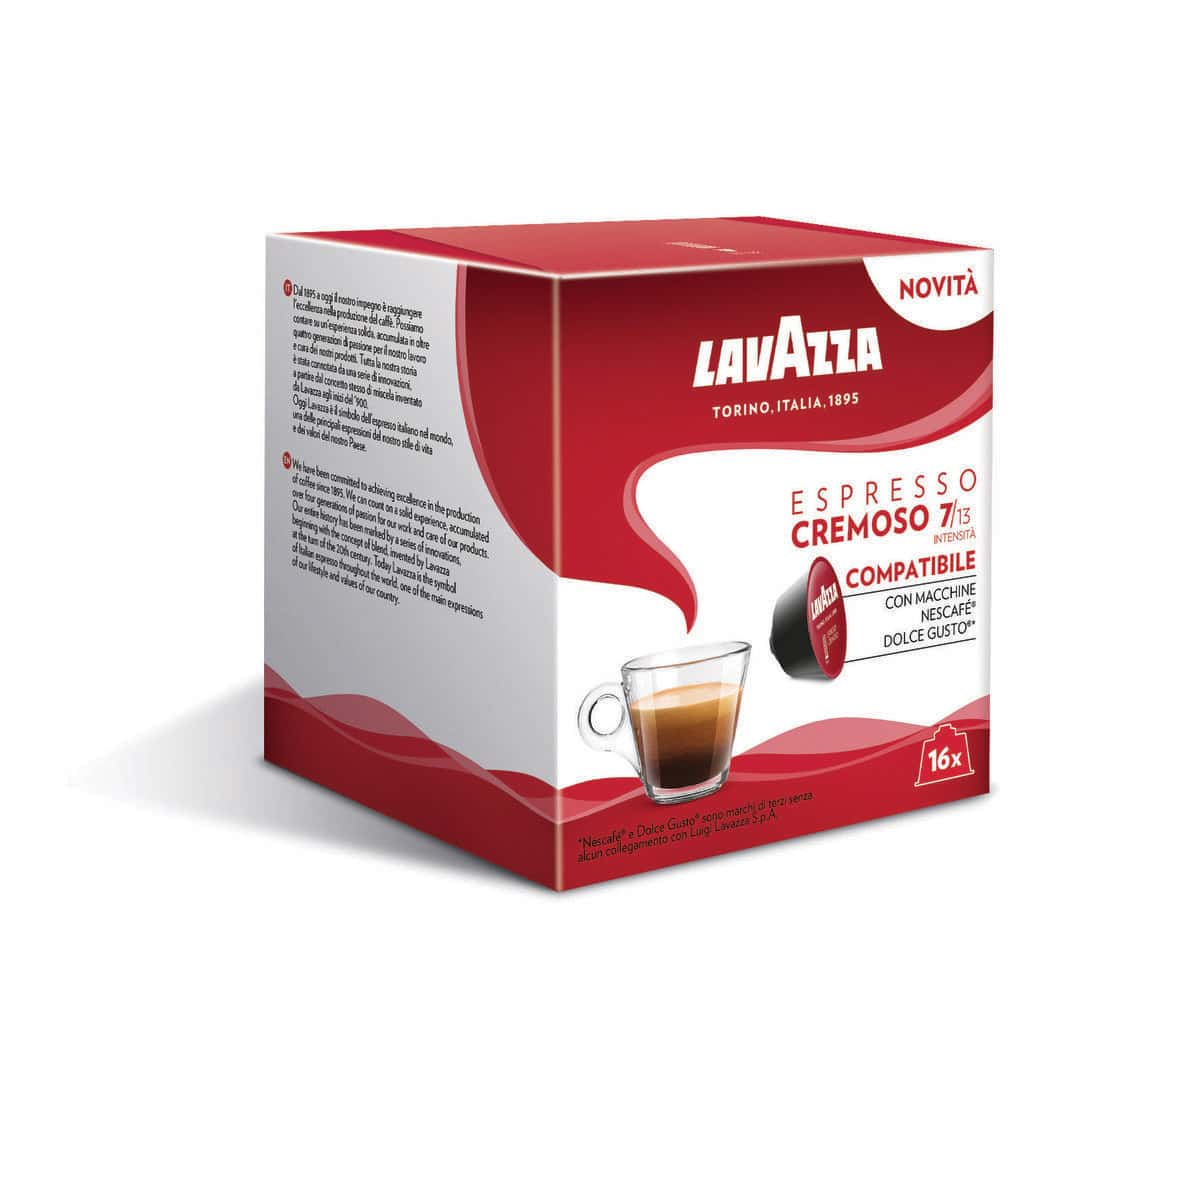 2324 dolcegustocremoso